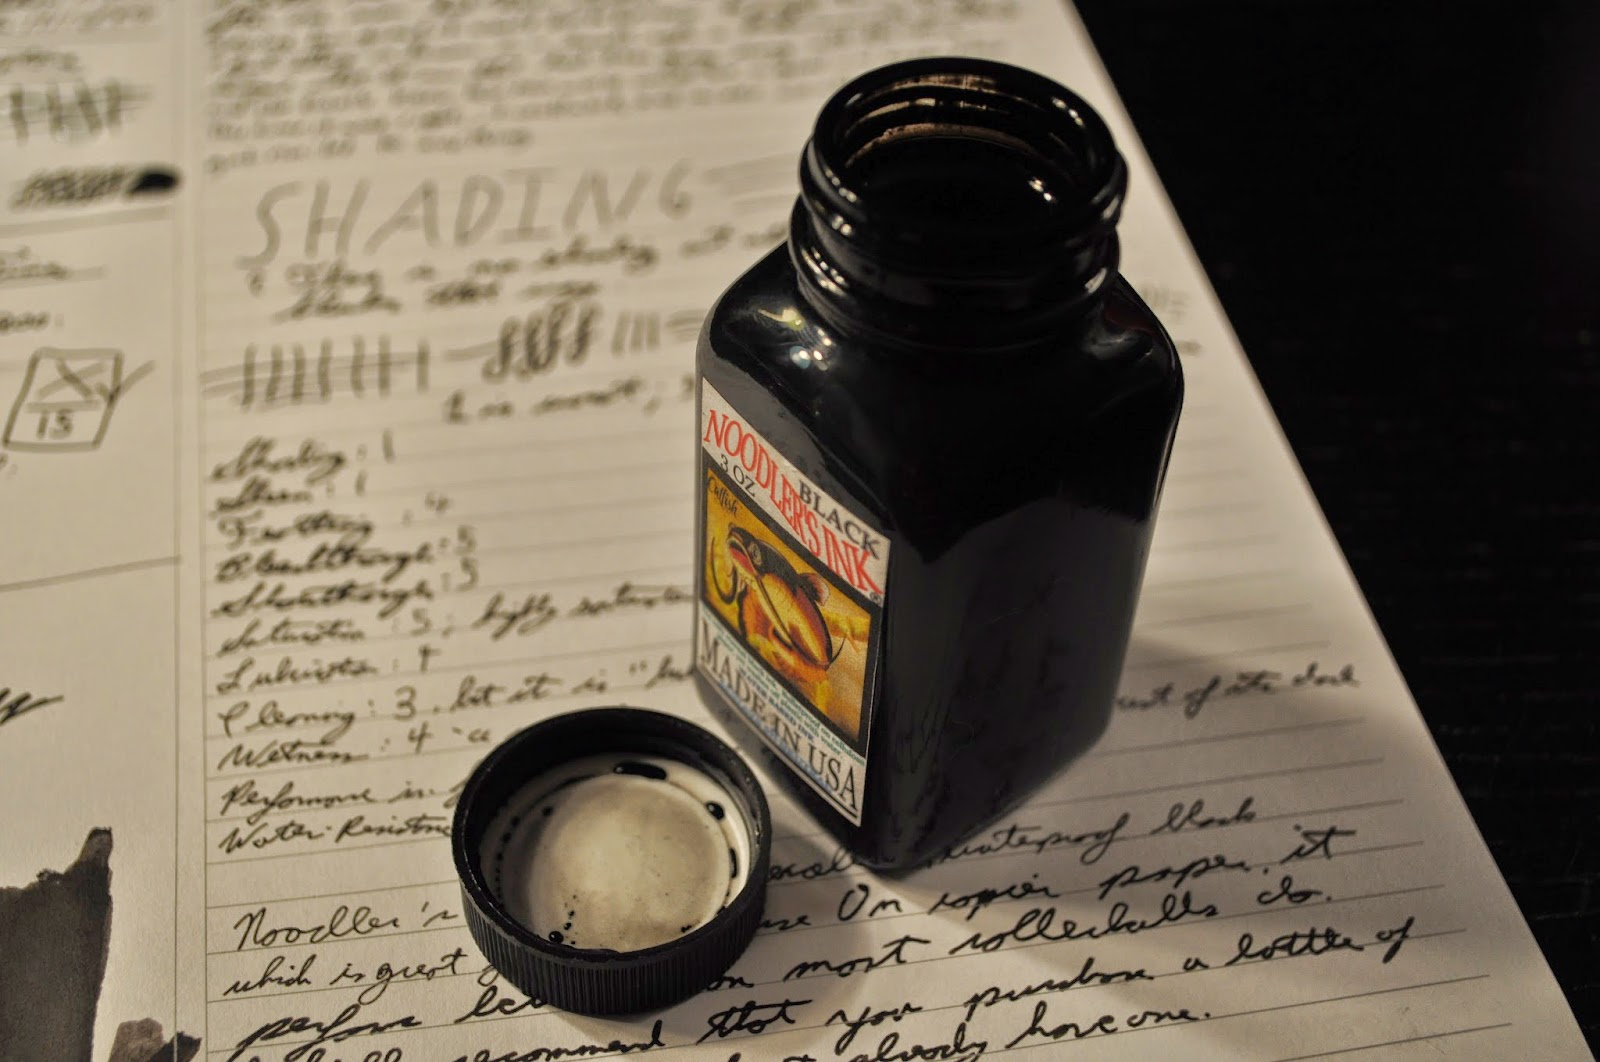 Noodler's Black Review